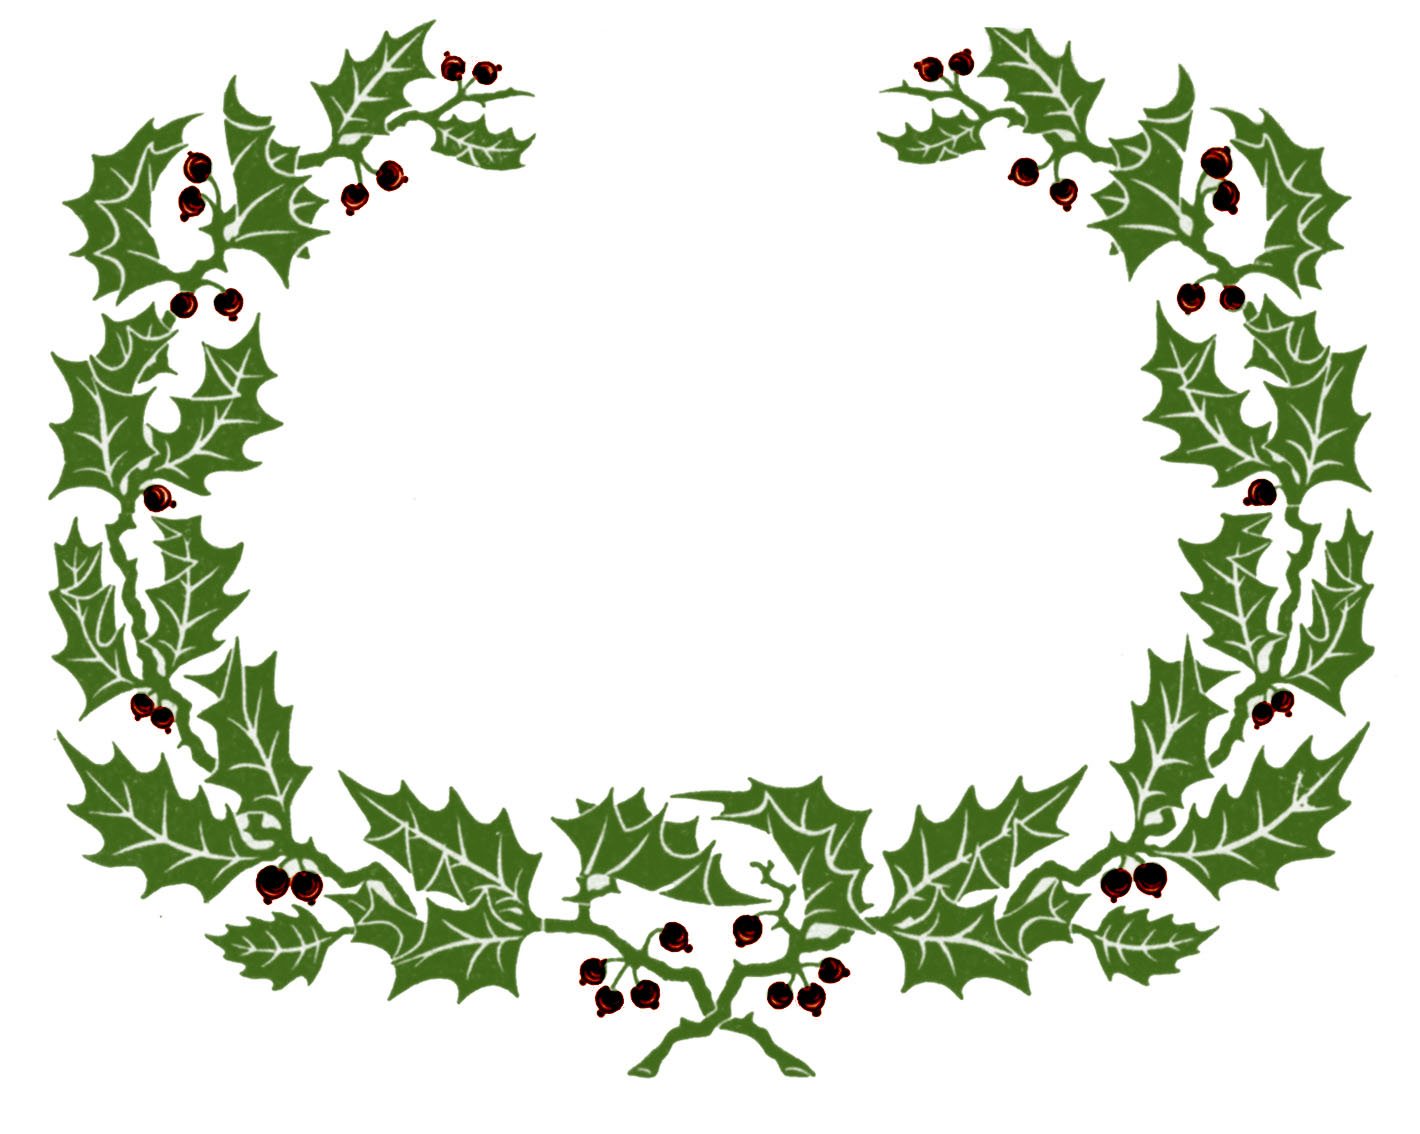 Wreath clipart vintage. Clip art holly graphic